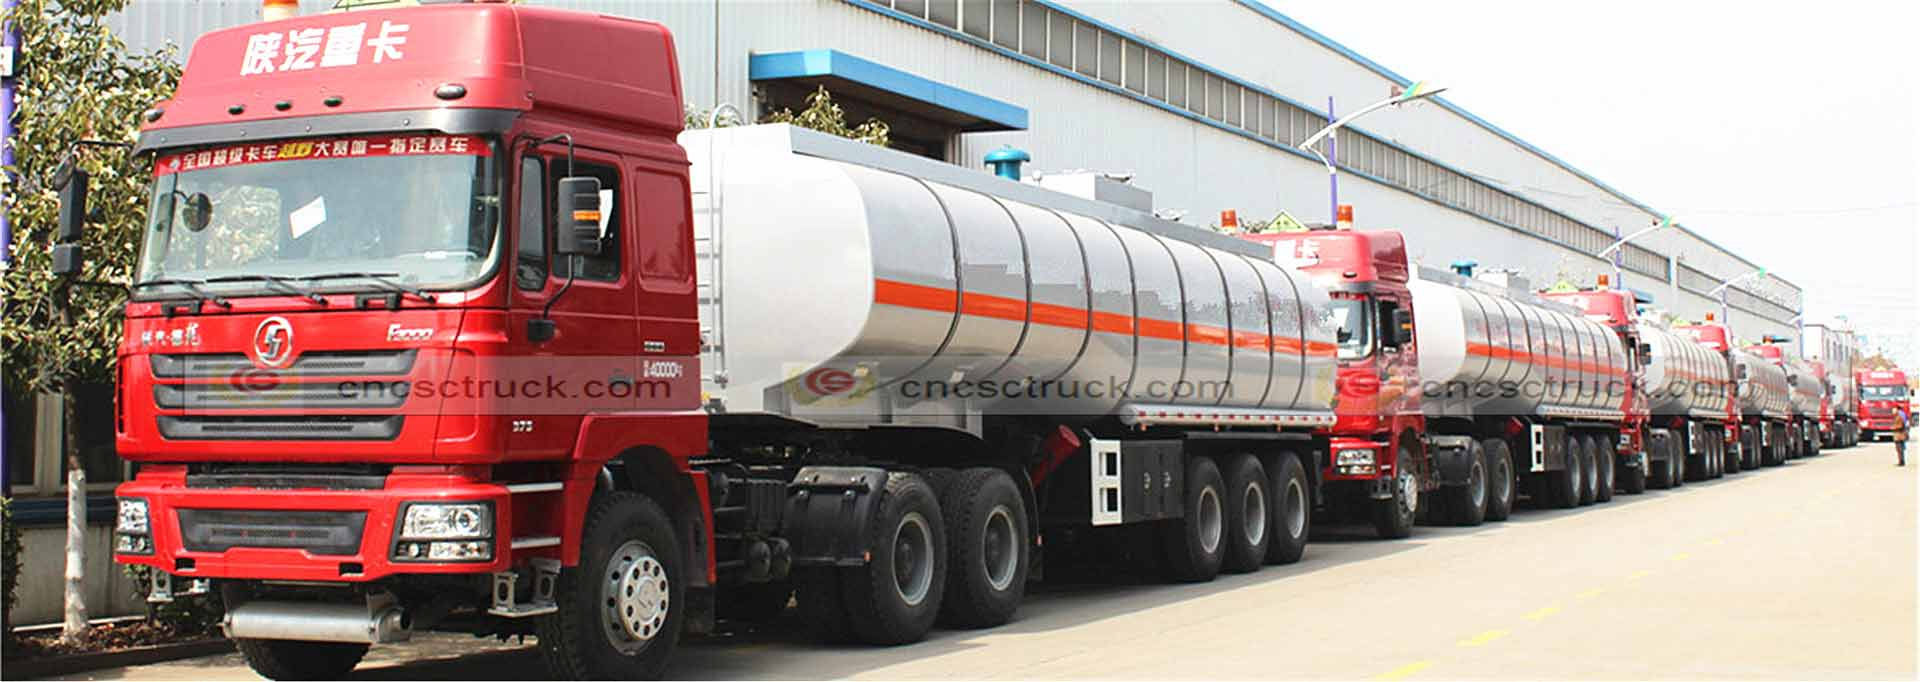 Aluminium Tank Semi Trailer Supplier